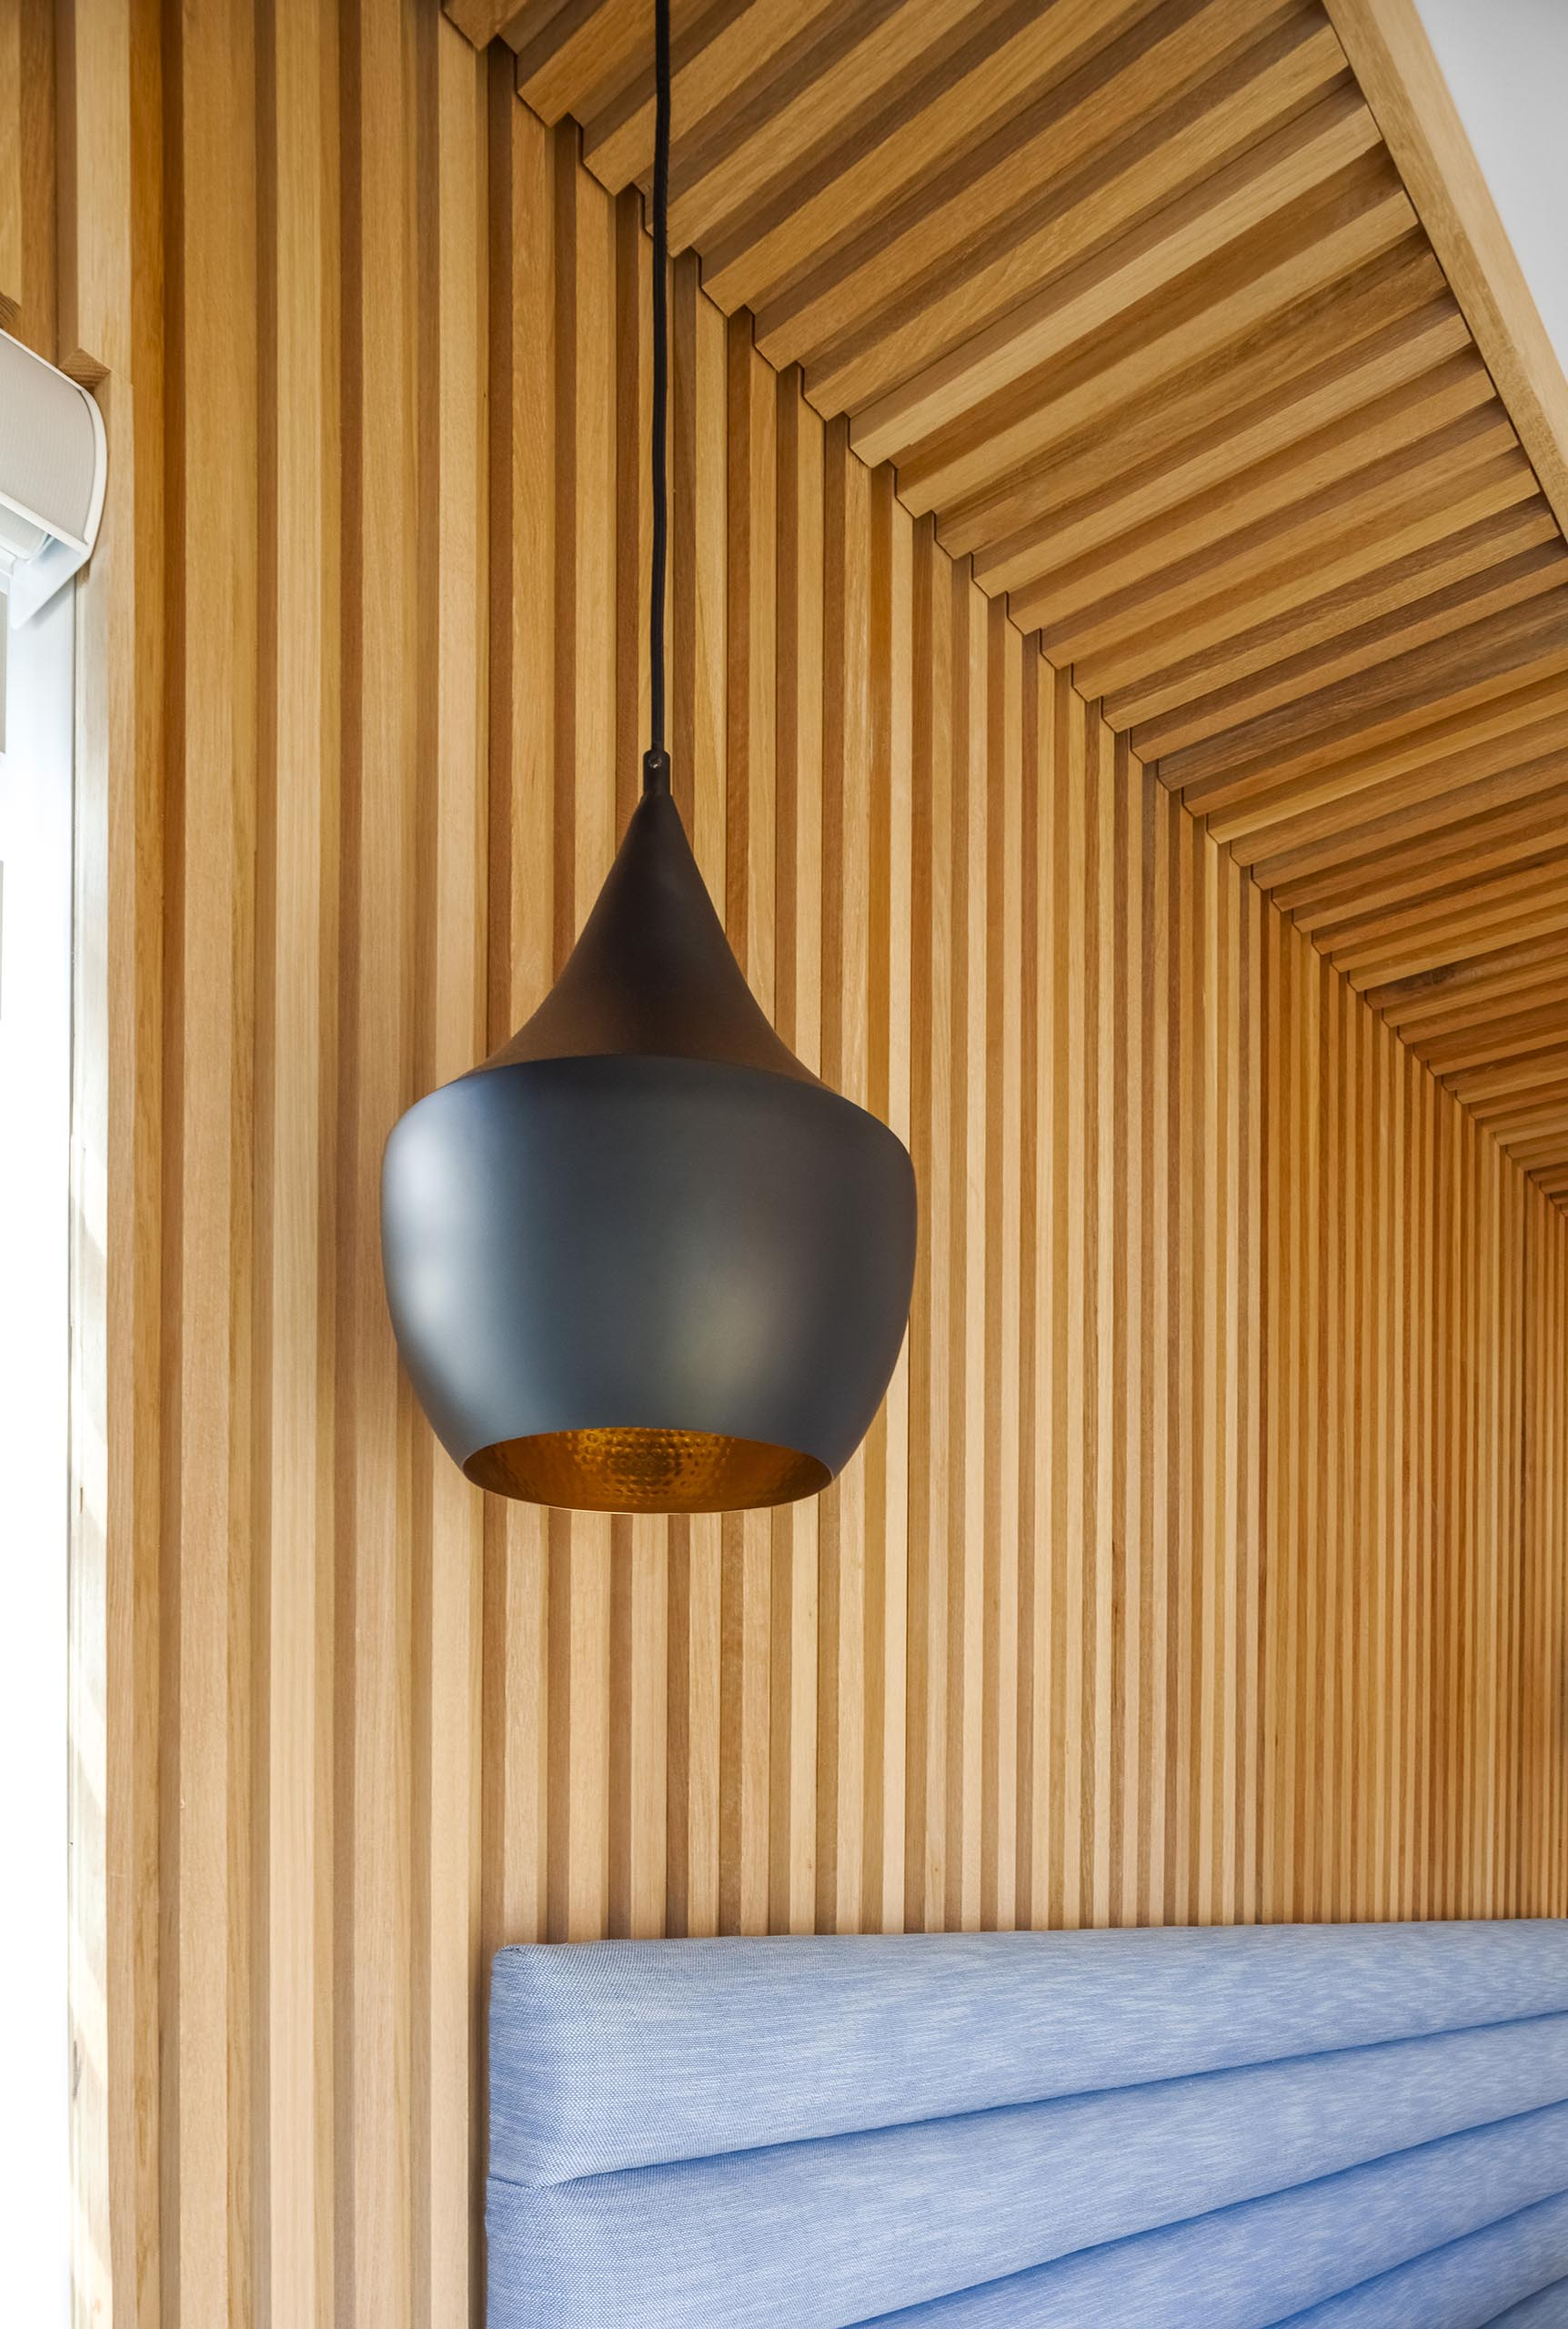 A wood accent wall with a modern black pendant light.